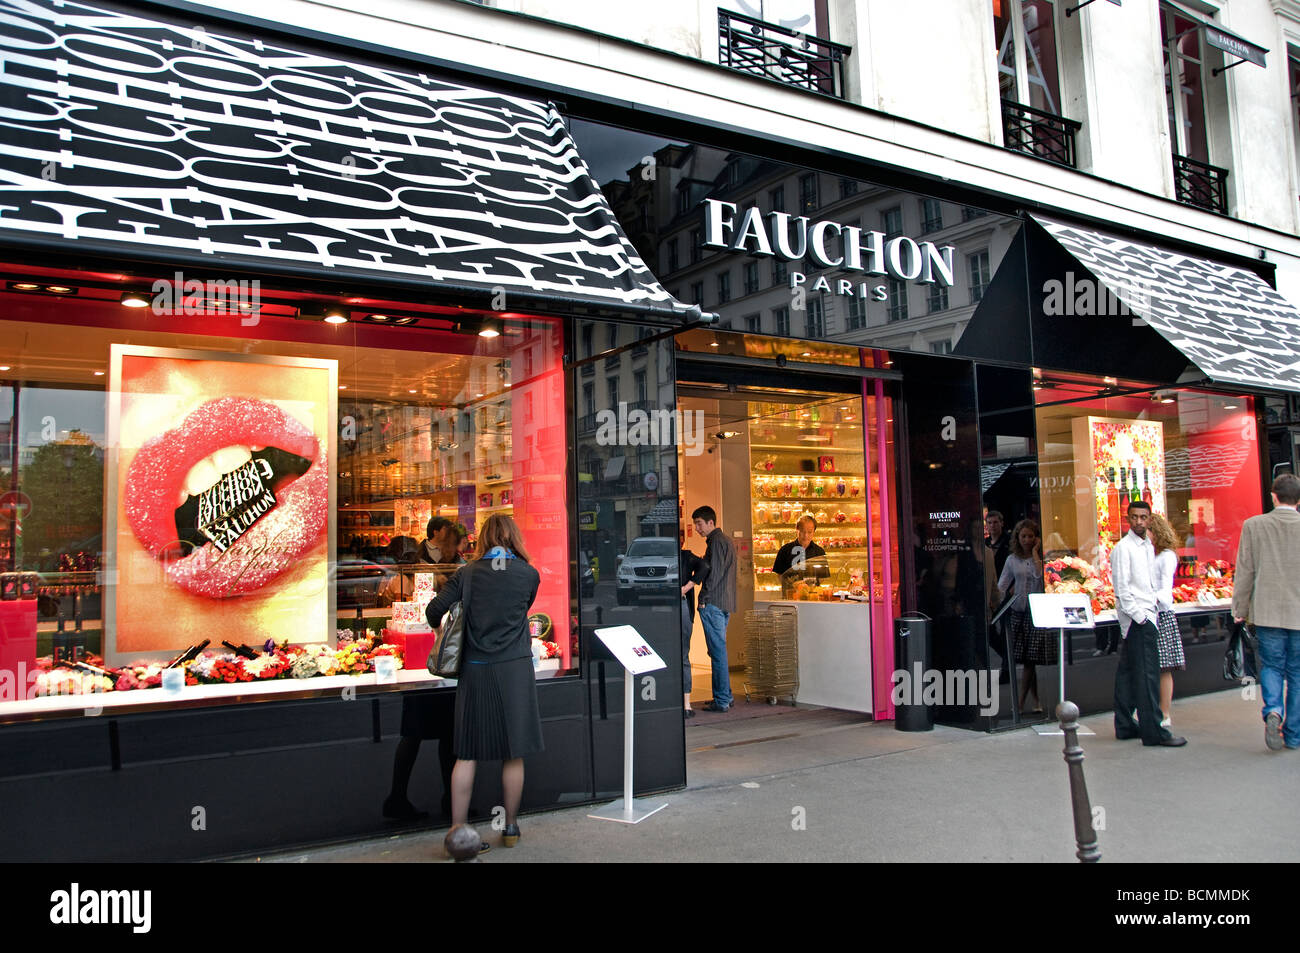 Fauchon france paris luxury food store delicacies place de for Showroom cuisine paris